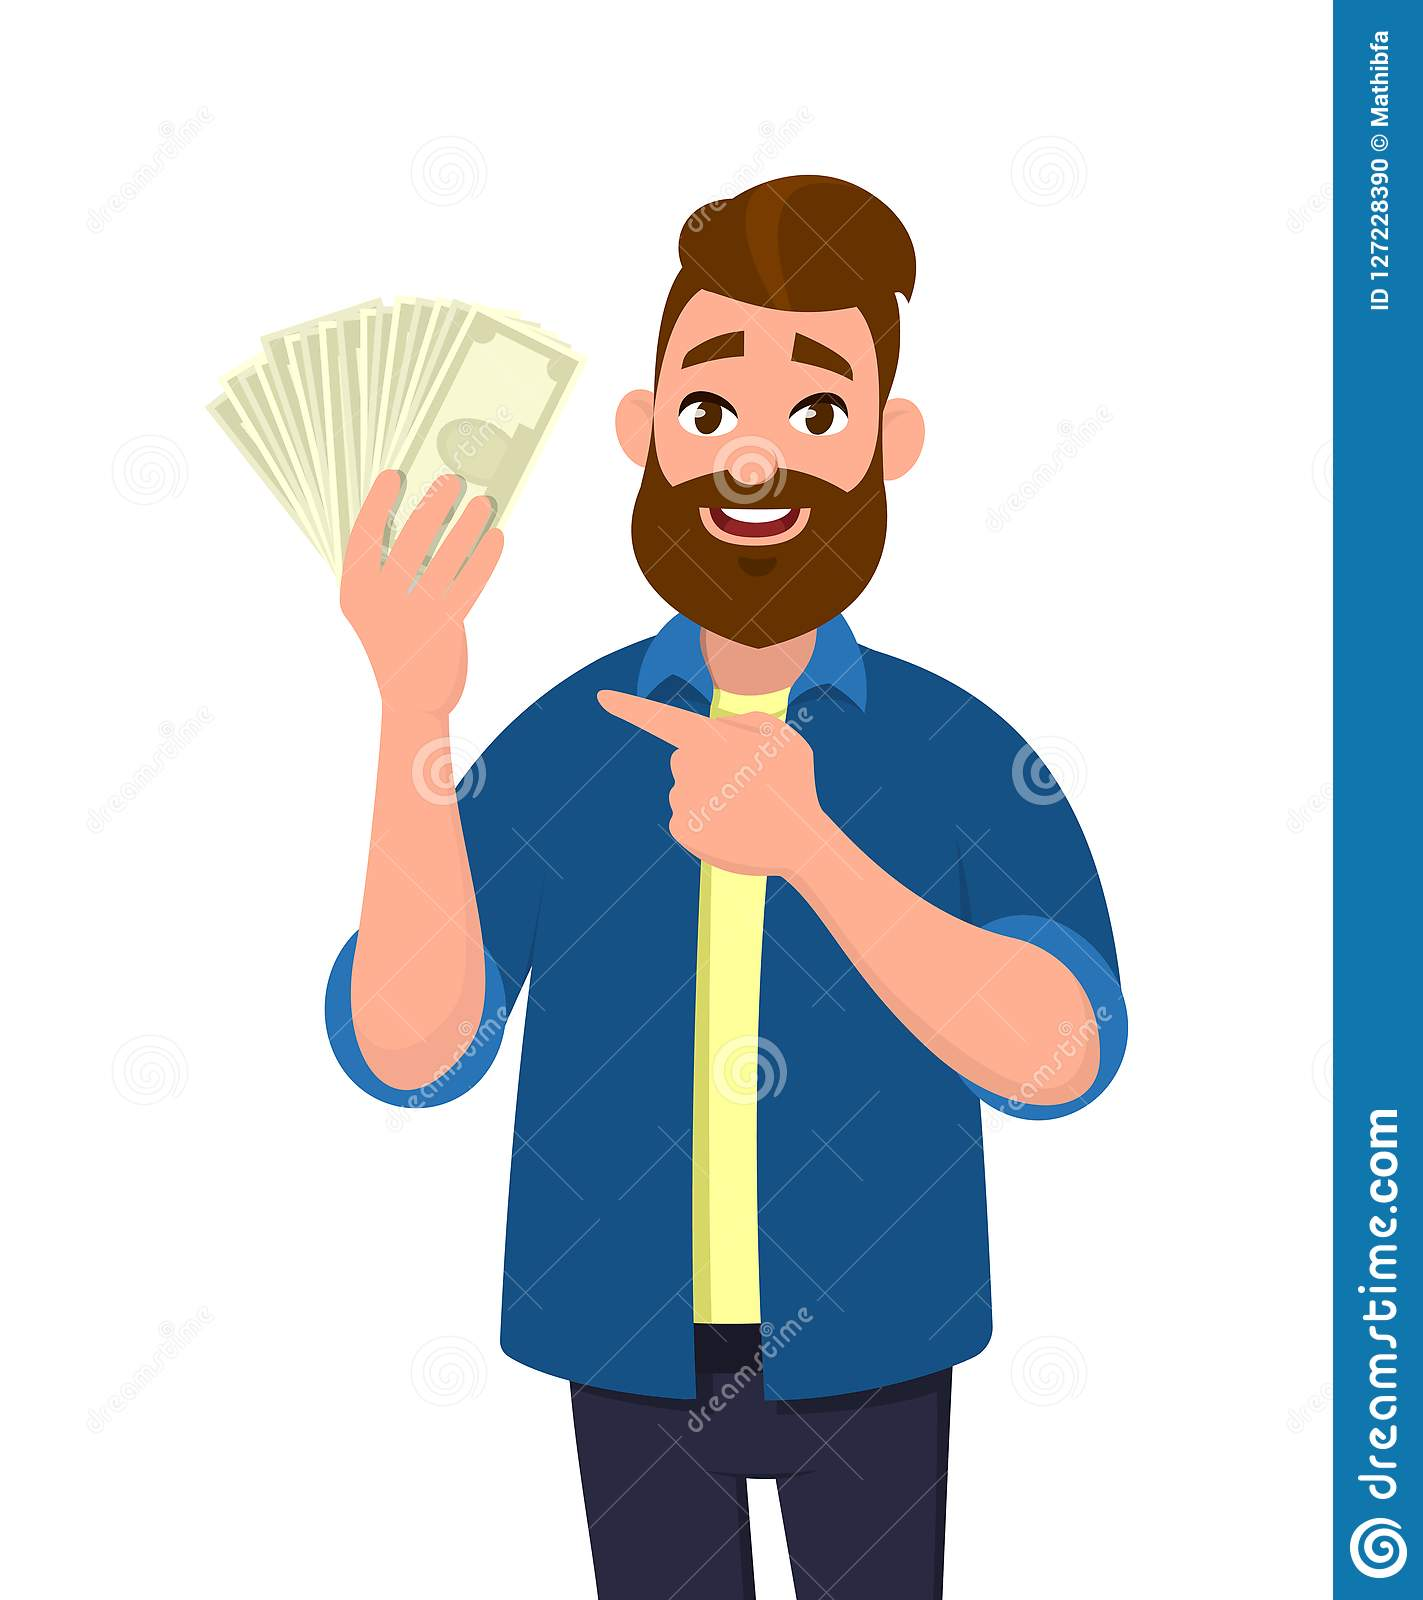 Happy young man holding cash/money/banknotes and pointing his index finger towards that. Financial money concept. Human emotion.